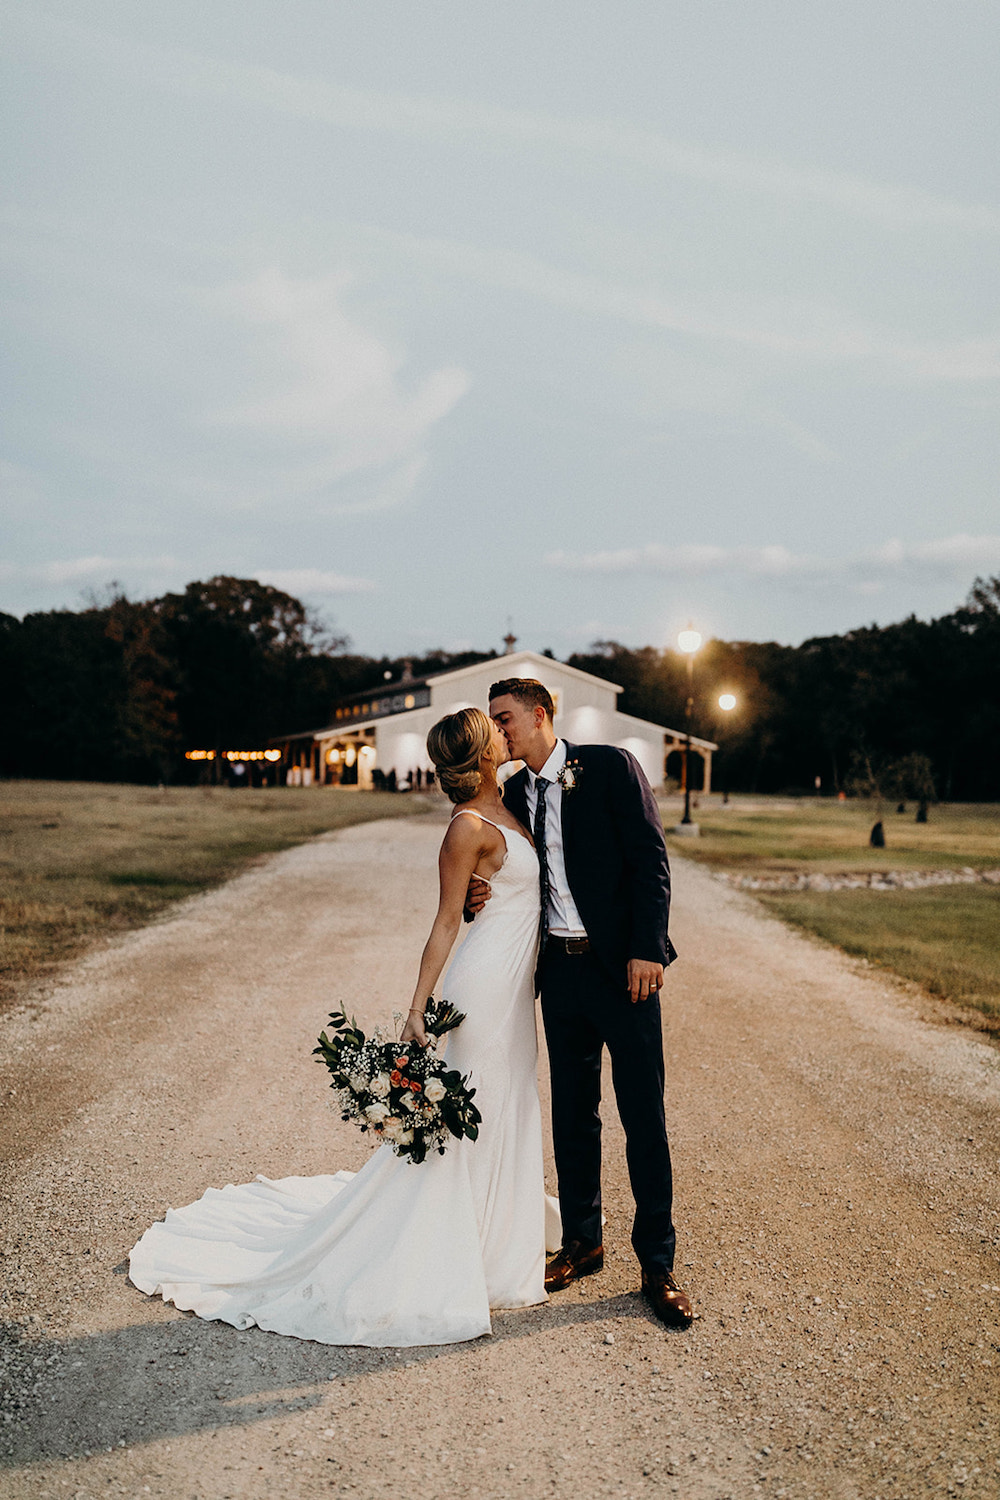 Microweddings with a Macro Experience